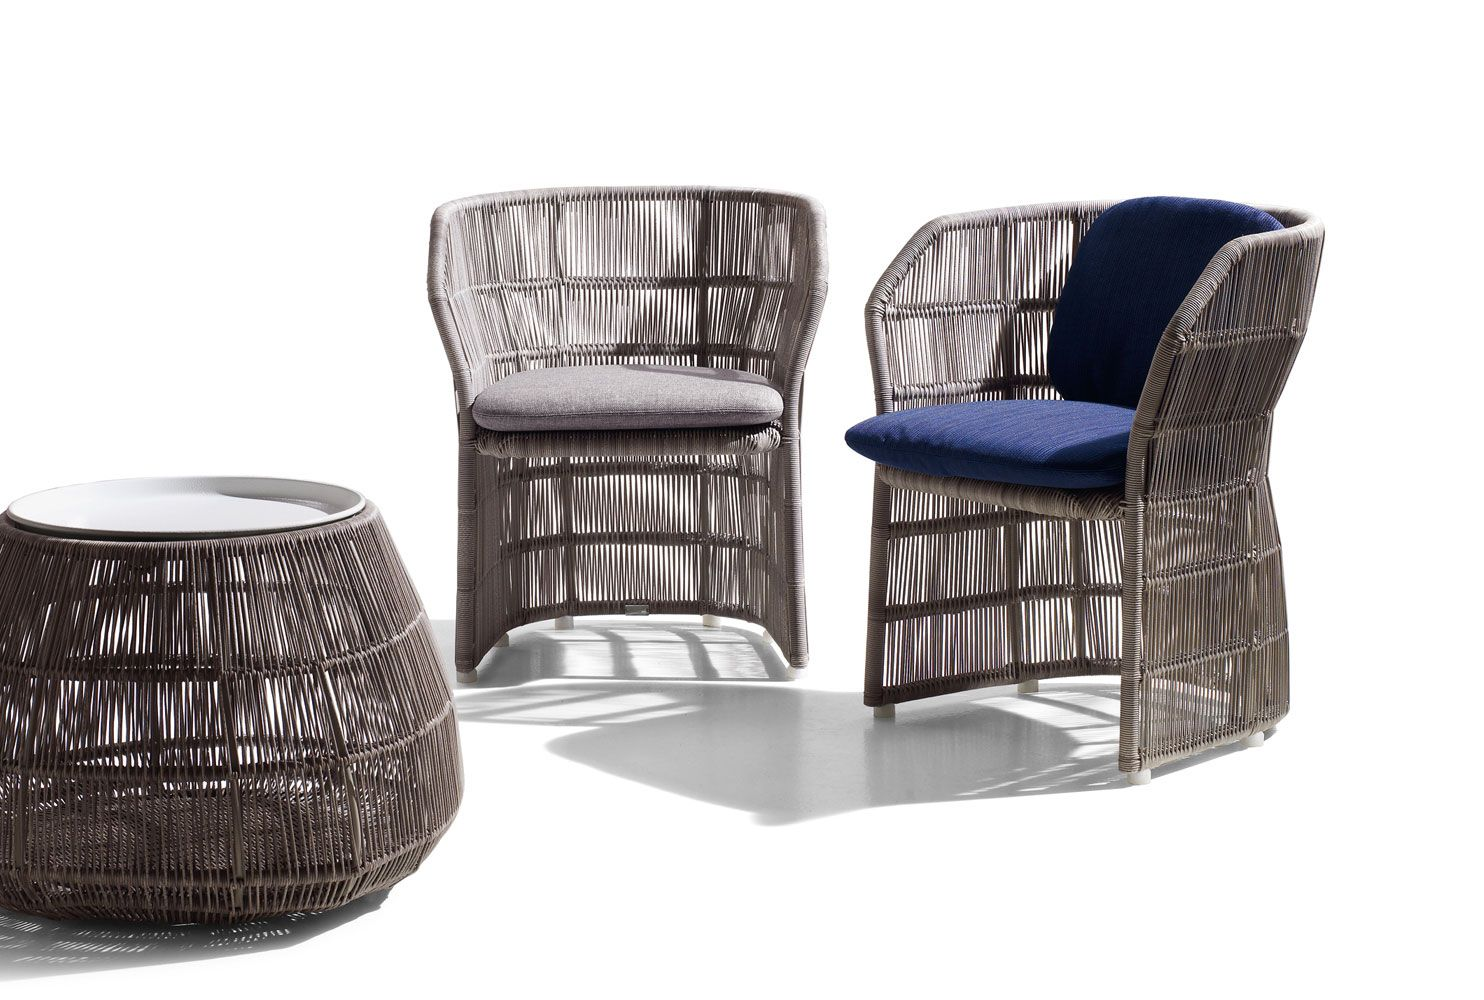 Sedia Urquiola B&amp Chair Canasta 13 Collection B B Italia Outdoor Design